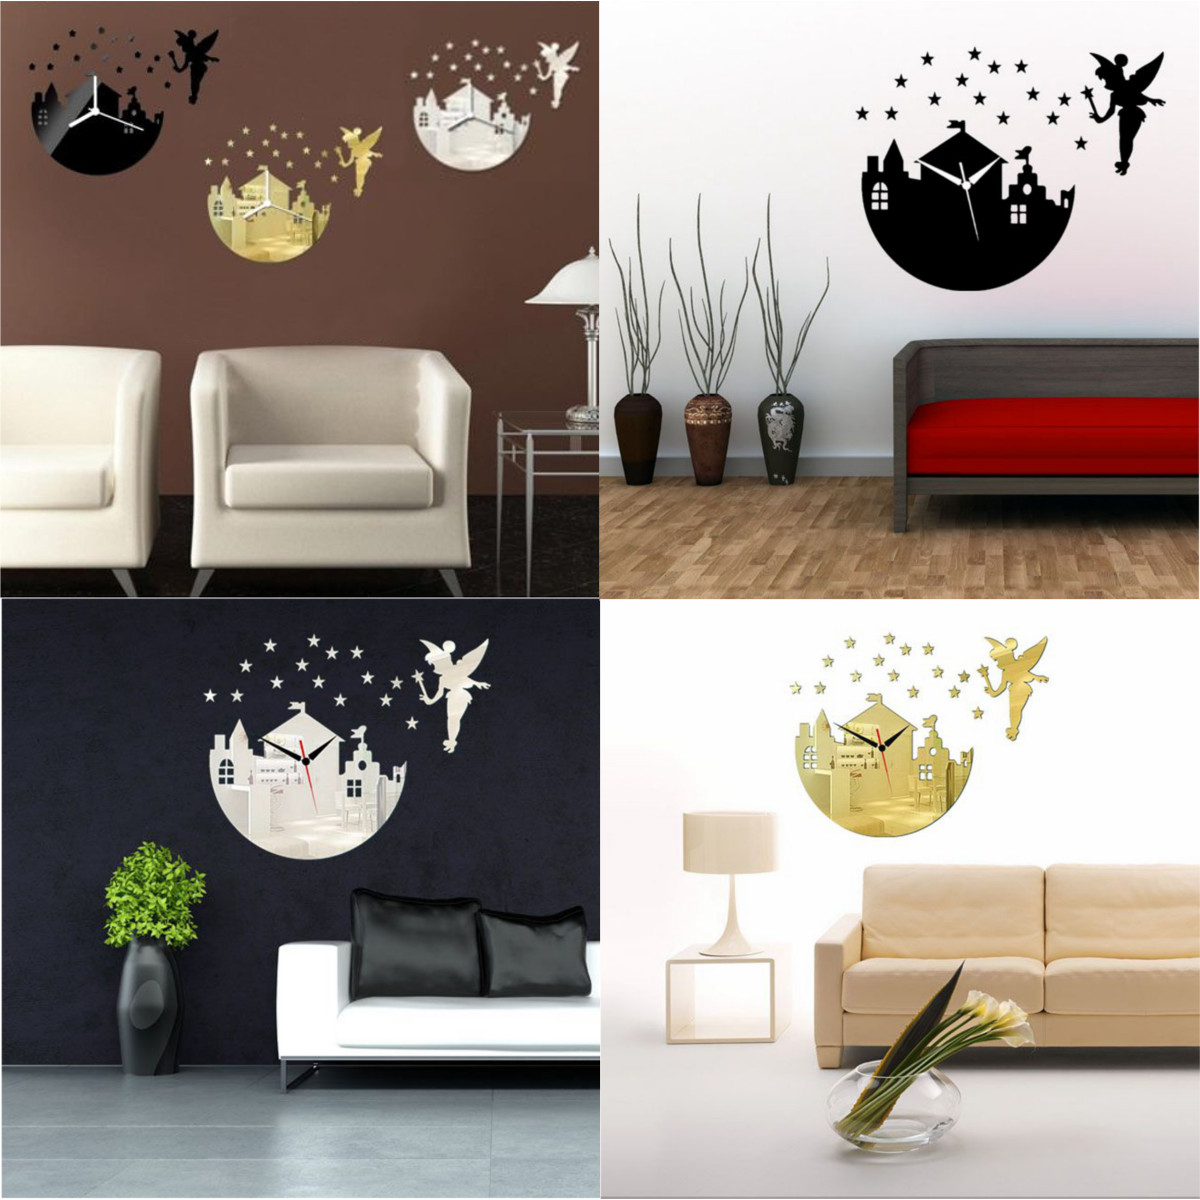 30x diy rund kreis wandtattoo spiegel aufkleber sticker wand wohnzimmer bad deko ebay. Black Bedroom Furniture Sets. Home Design Ideas